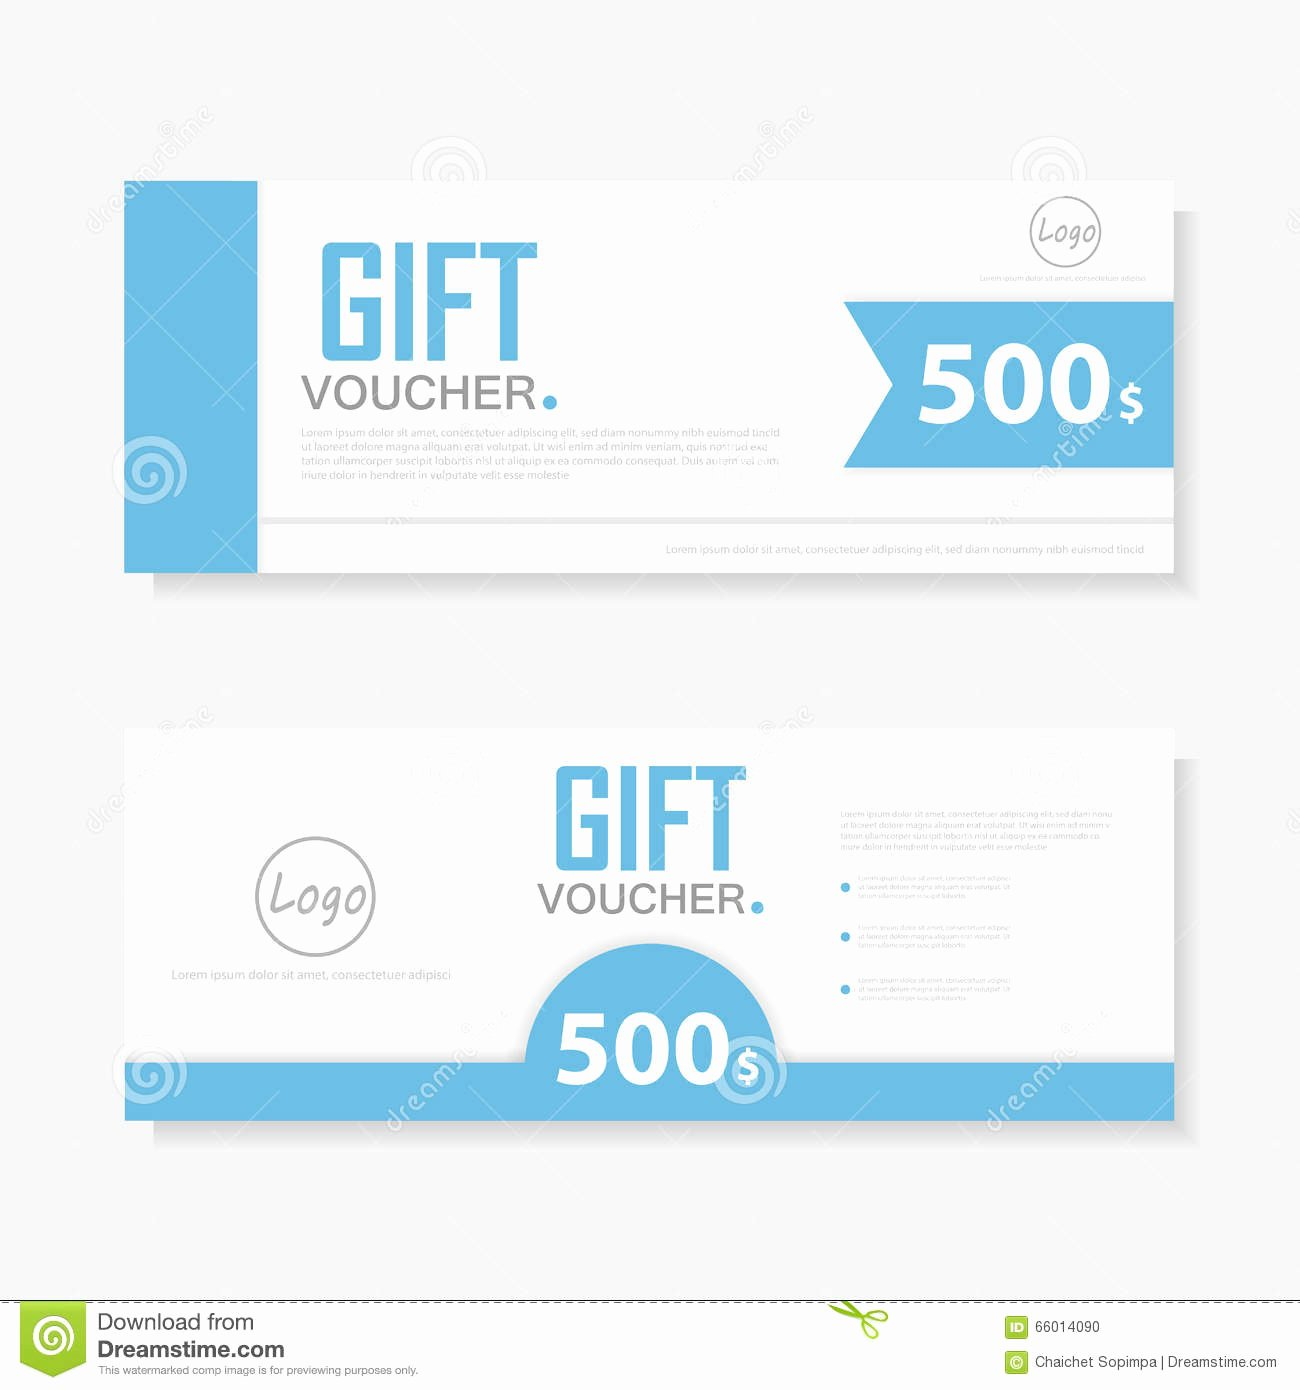 Cute Gift Certificate Template Awesome Blue Gift Voucher Template with Colorful Pattern Cute Gift